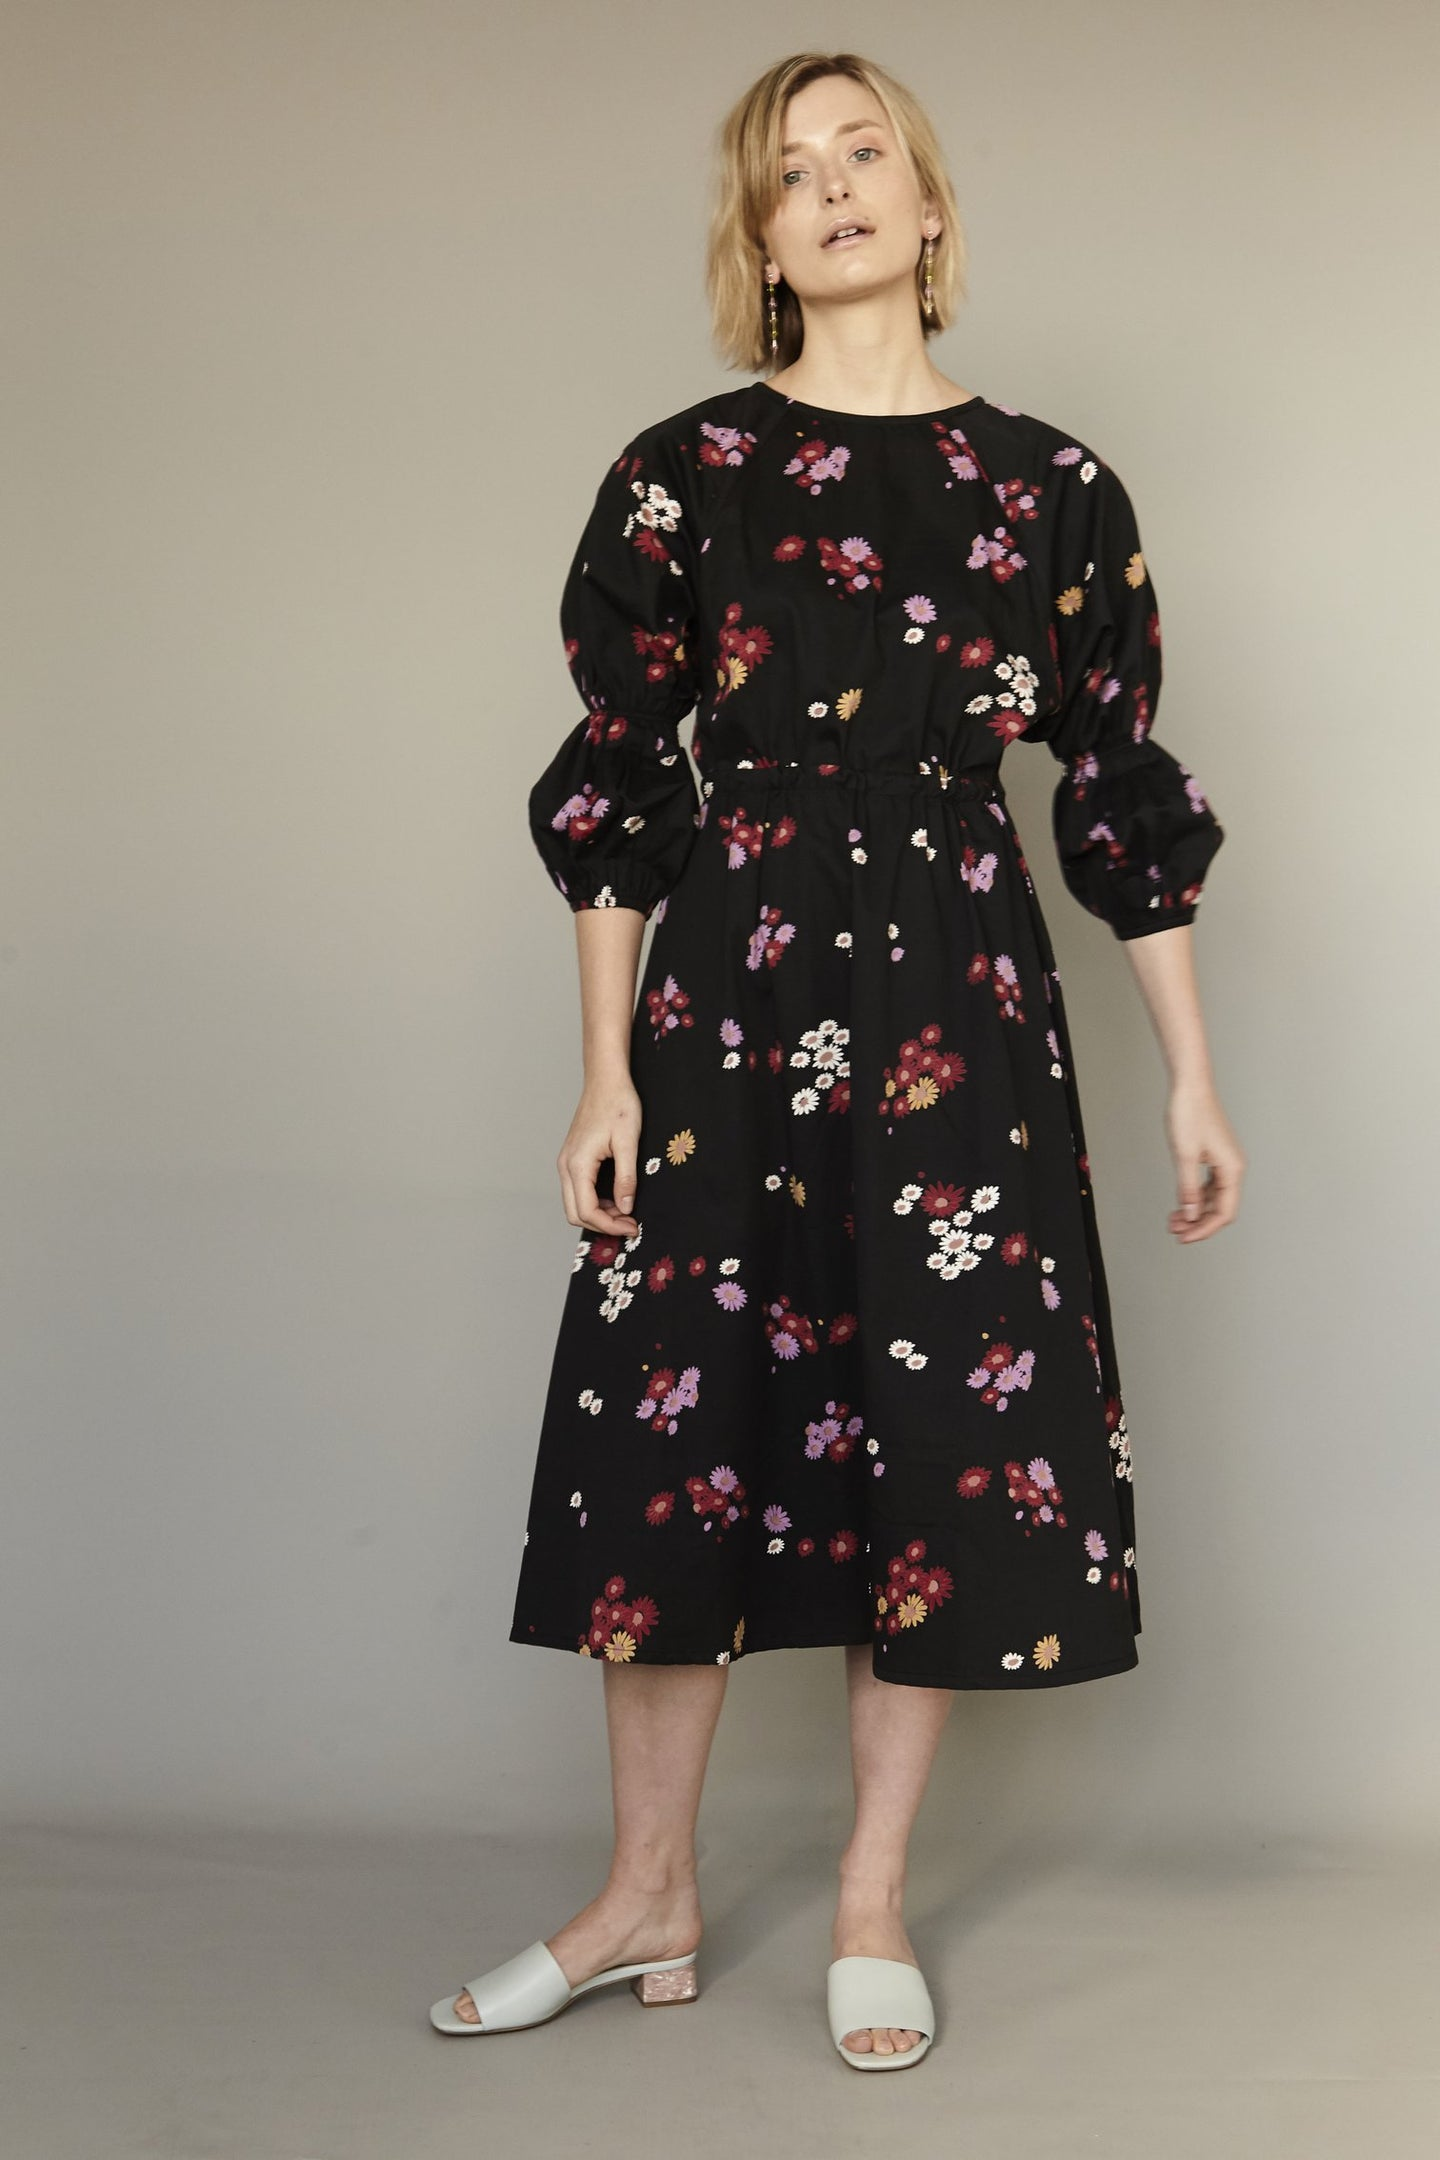 Mane Project | Wise Dress in Black Floral